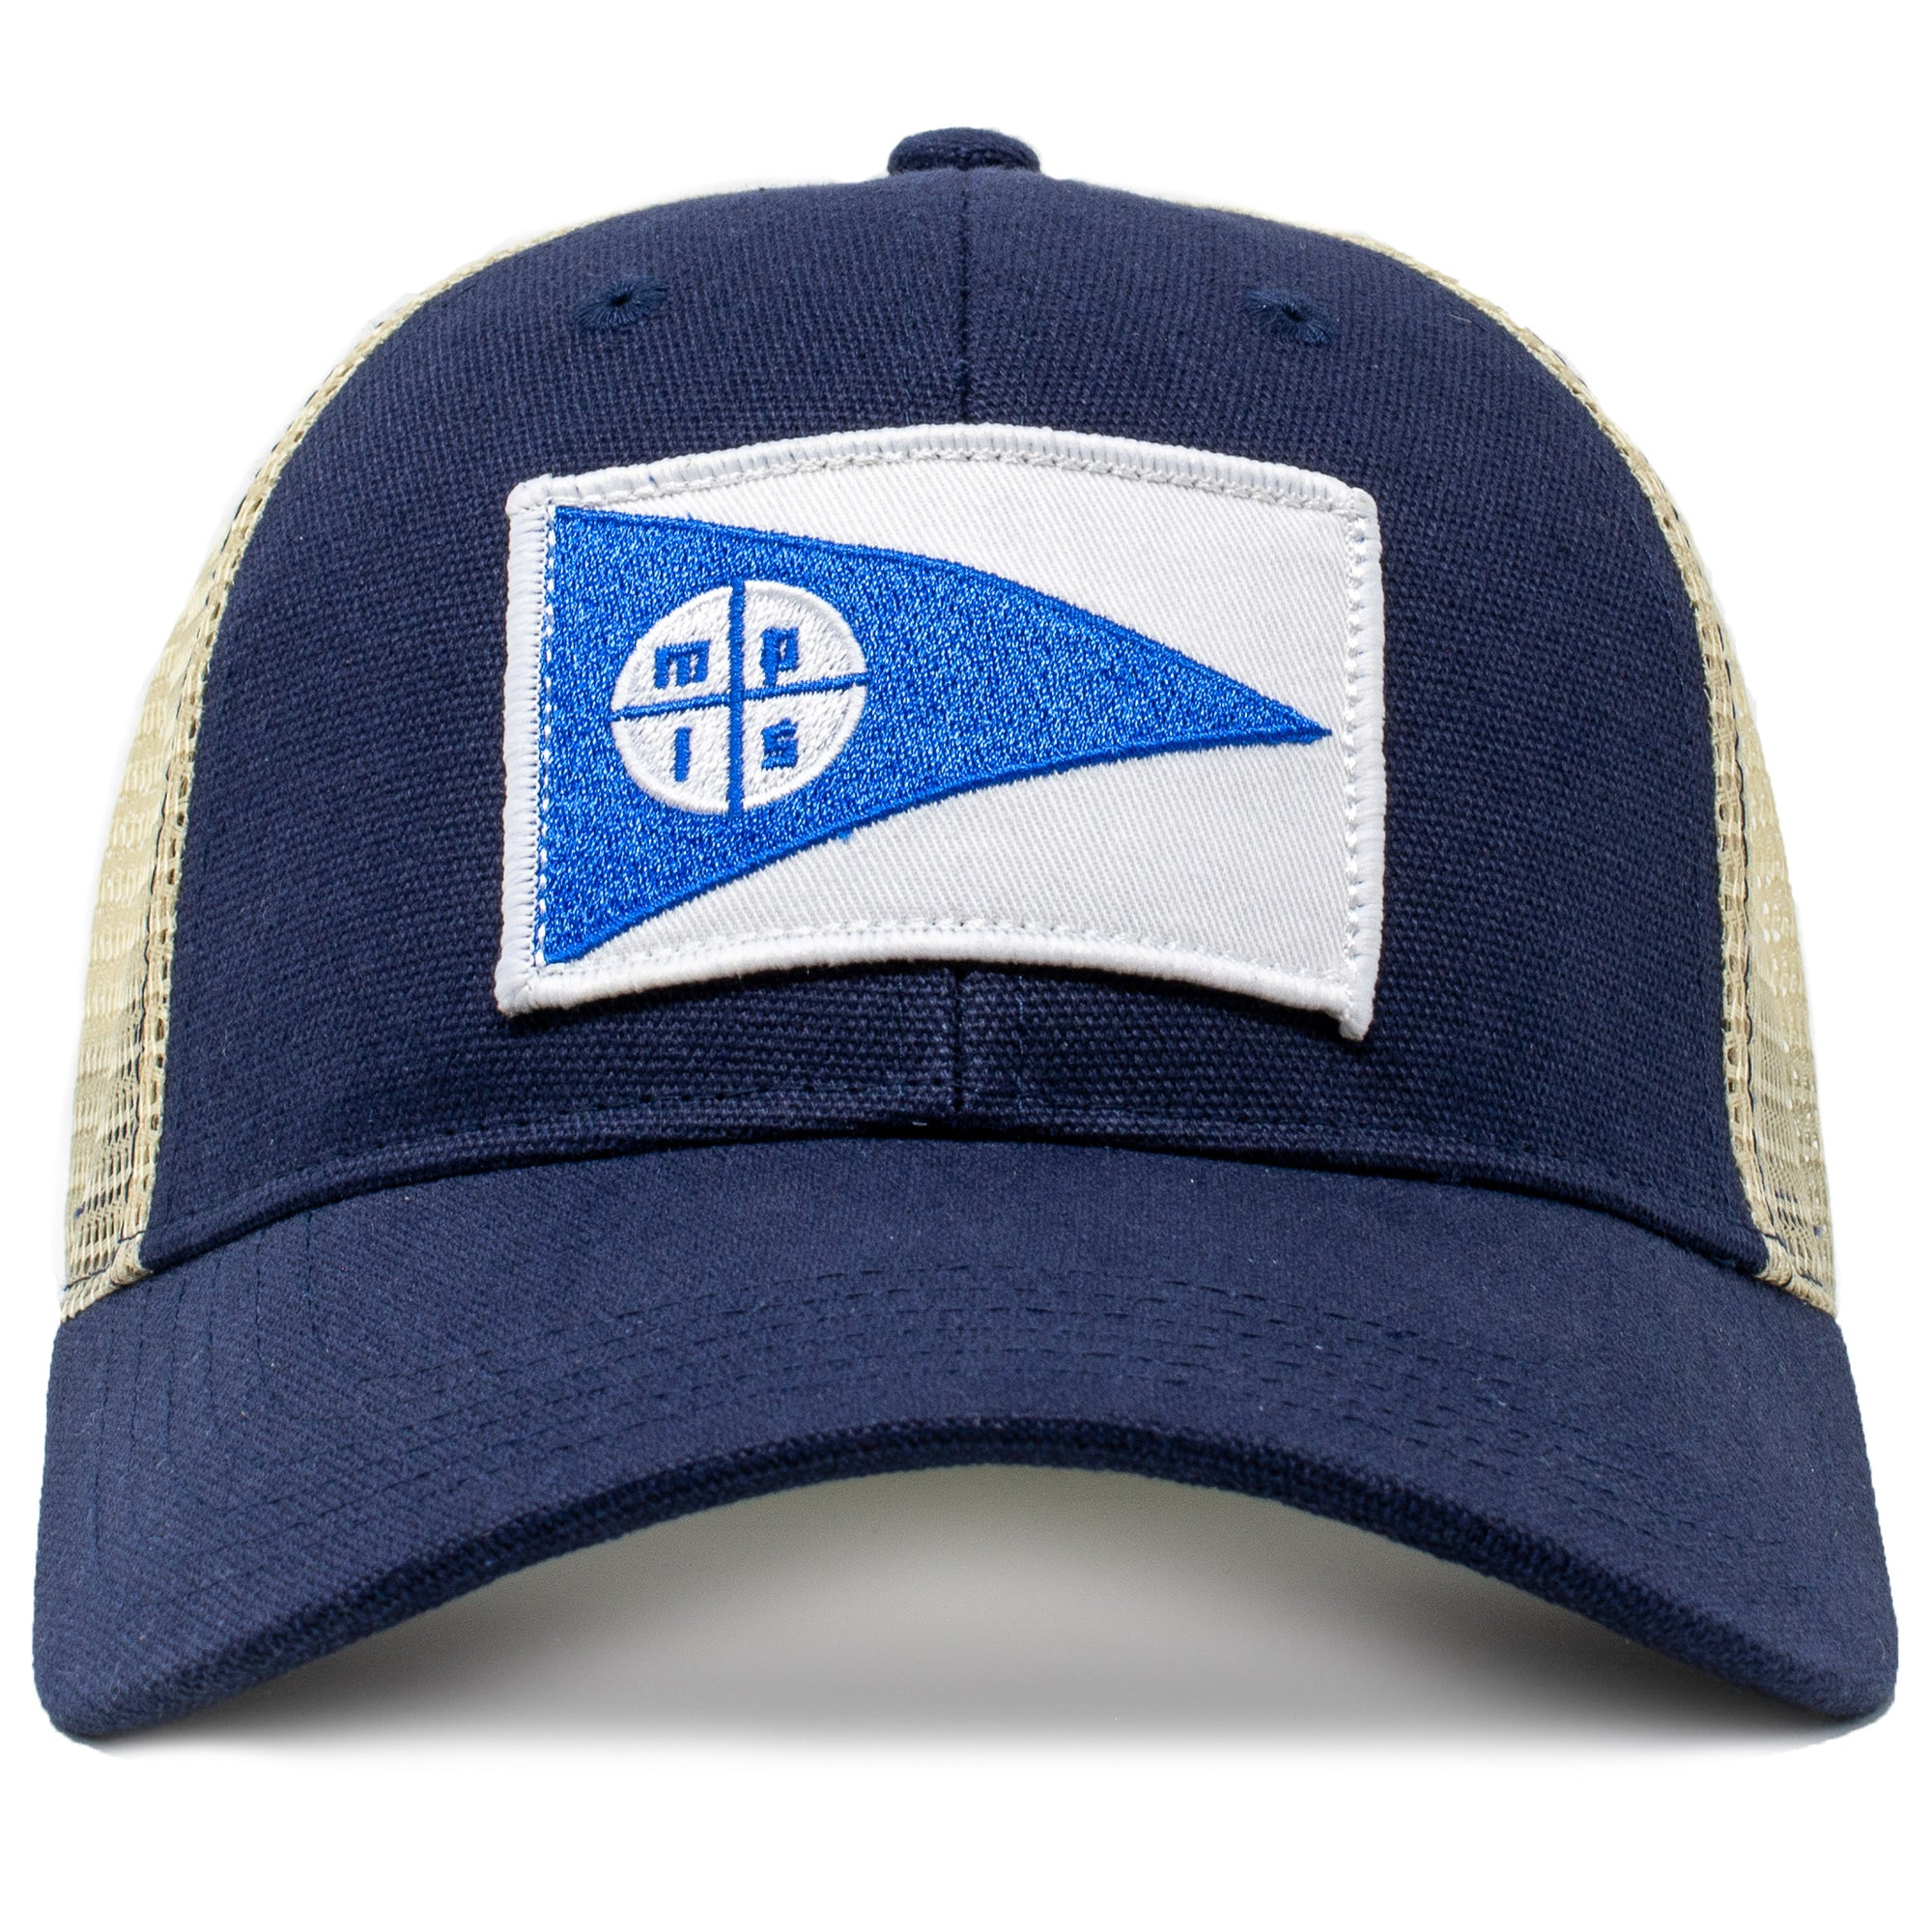 Vintage Minneapolis flag hat